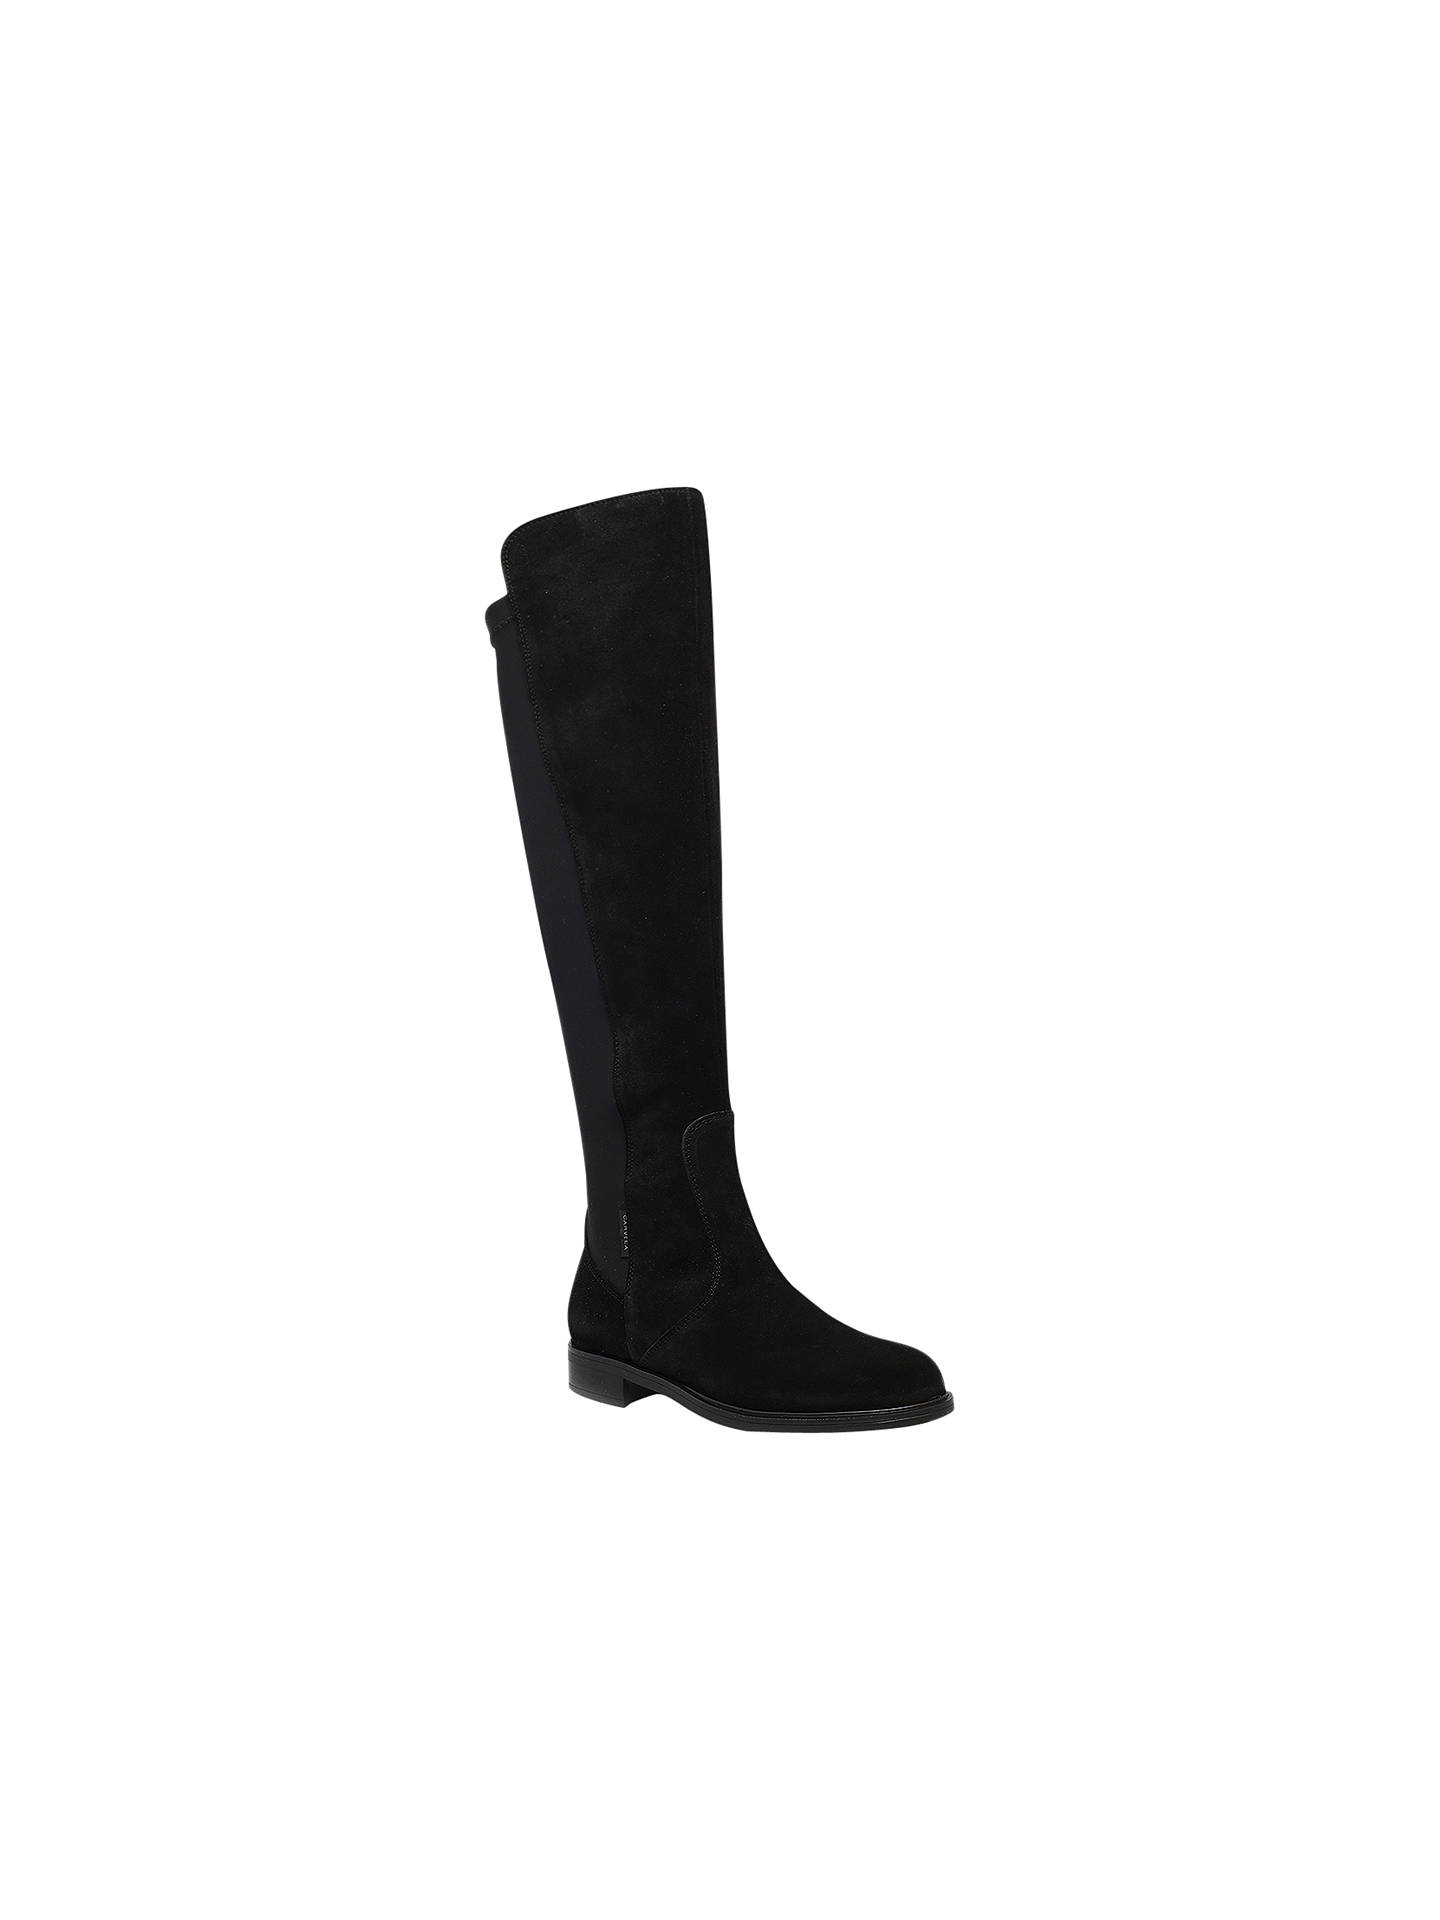 b7ac87b3068 Carvela Walnut Suede Flat Knee High Boots, Black